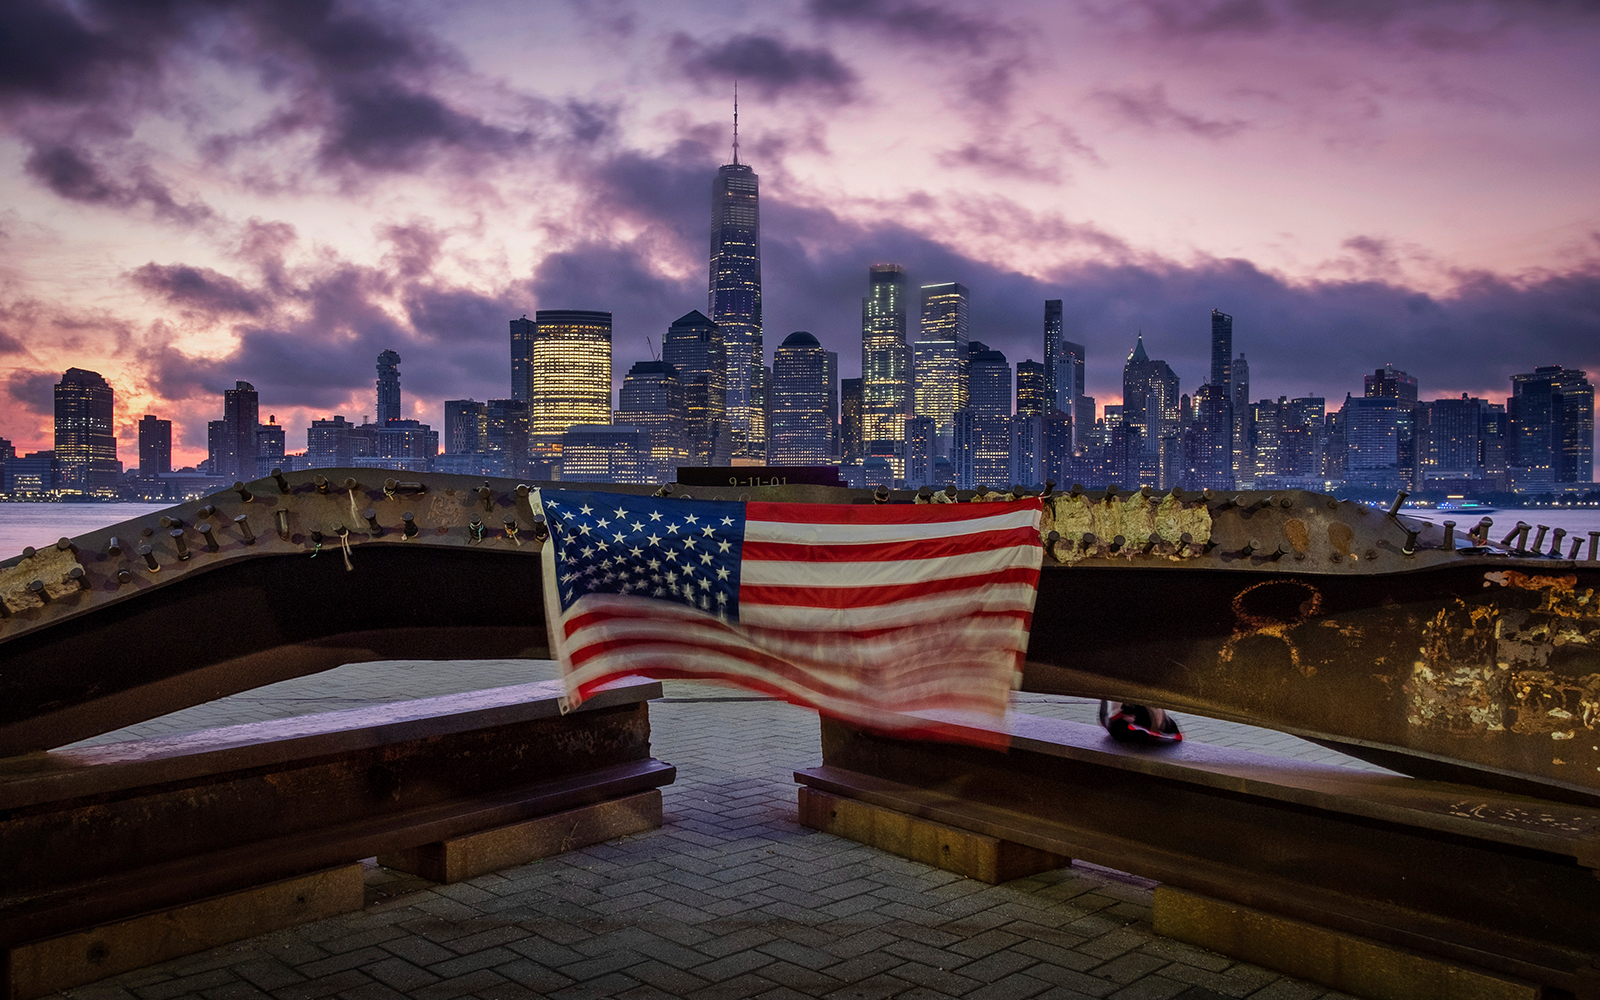 Ceremony Commemorating 9/11 Attack Held at NYC Memorial